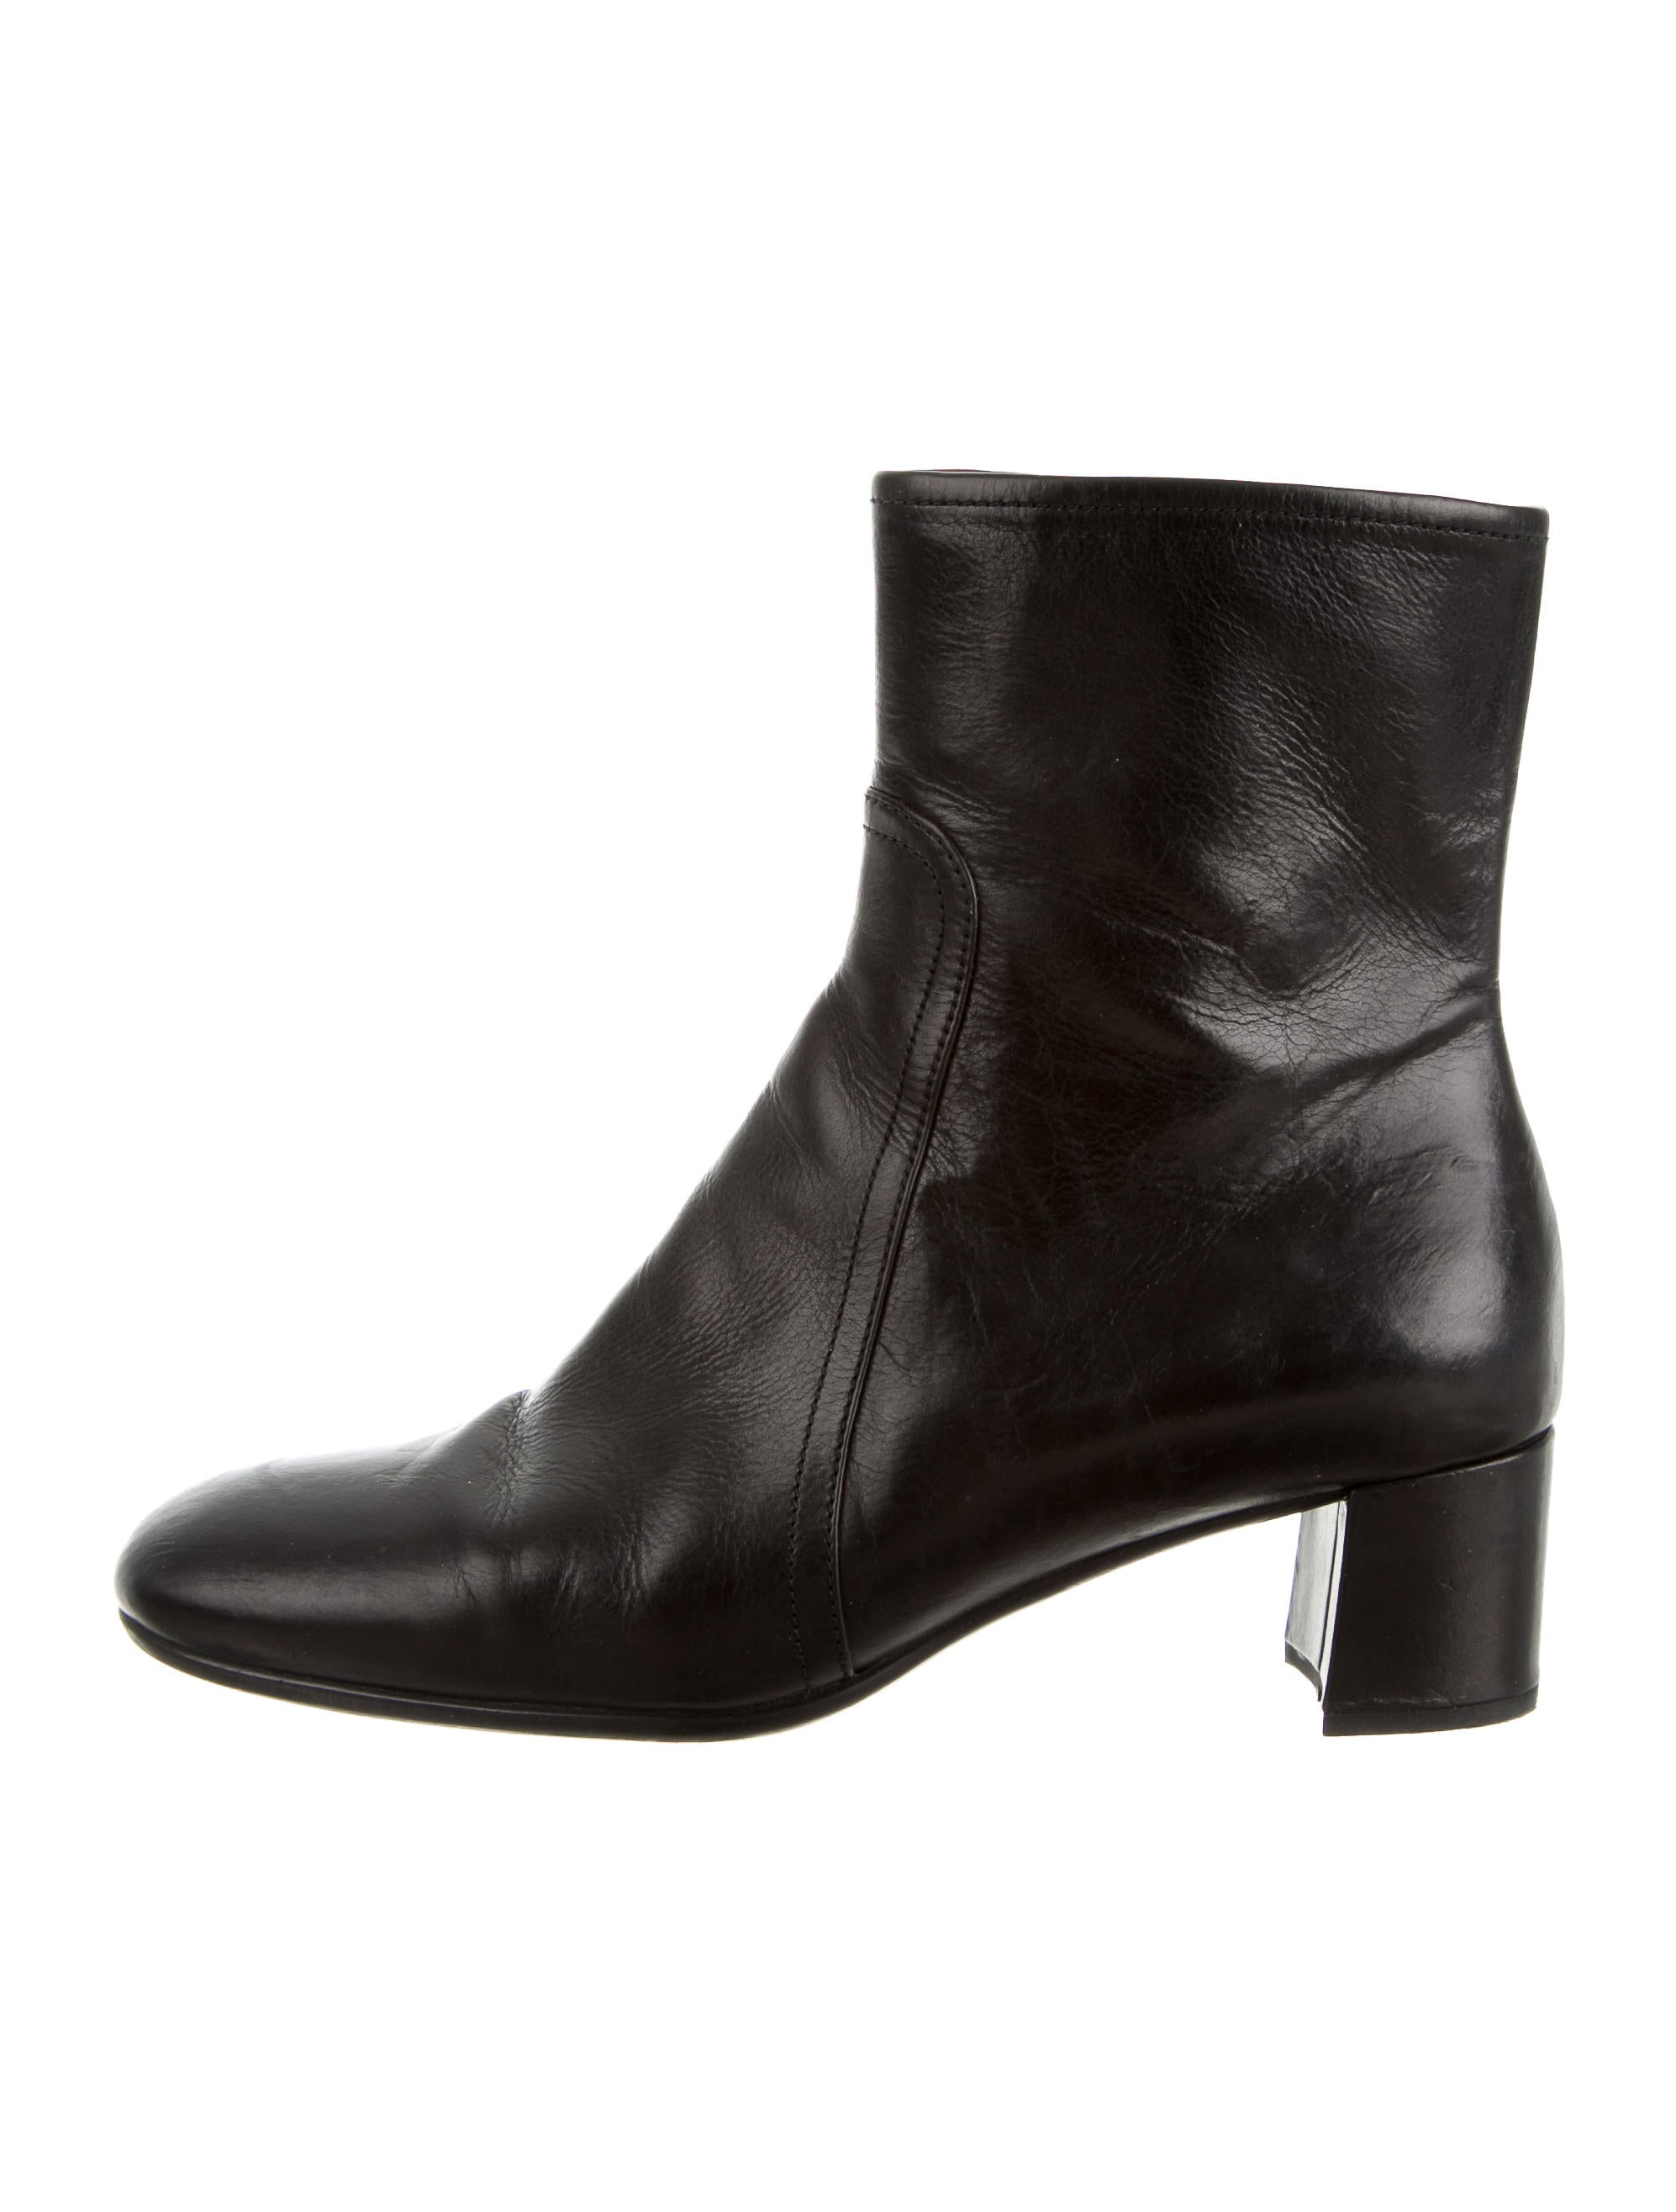 prada sport black leather ankle boots shoes wpr30037